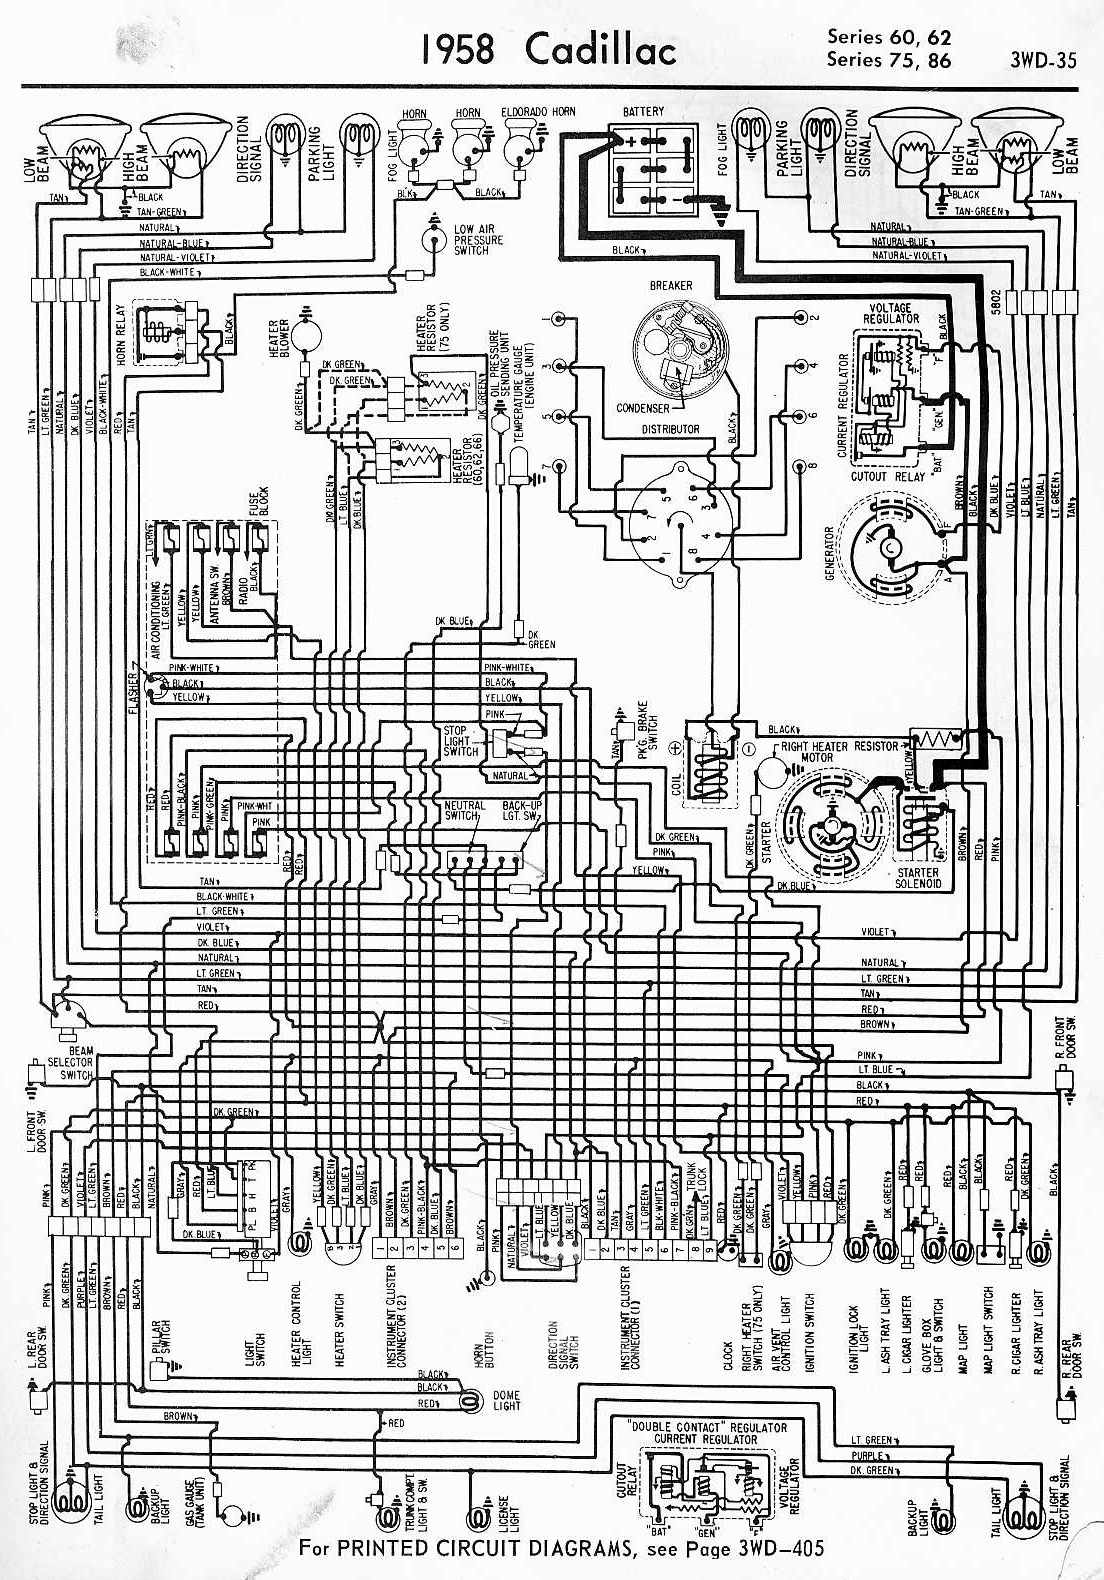 wiring diagram for 1958 cadillac 60 62 75 86 series?t\=1502556603?quality\=80\&strip\=all 1959 cadillac wiring harness 1959 cadillac air conditioning, 1959 1959 cadillac 390 engine wiring diagram at gsmportal.co